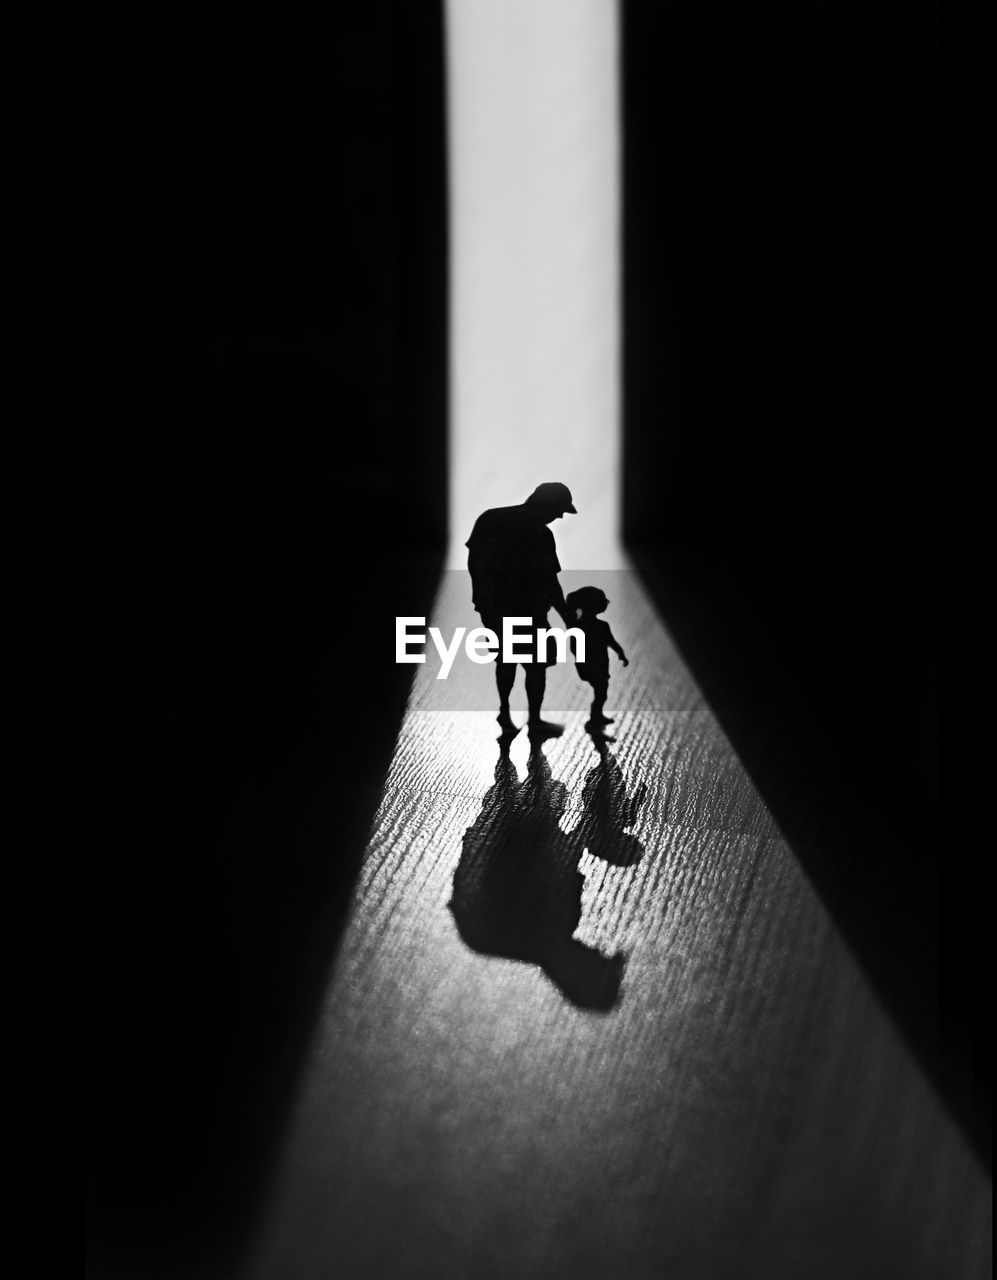 SILHOUETTE PEOPLE WITH TOY STANDING ON FLOOR IN DARK